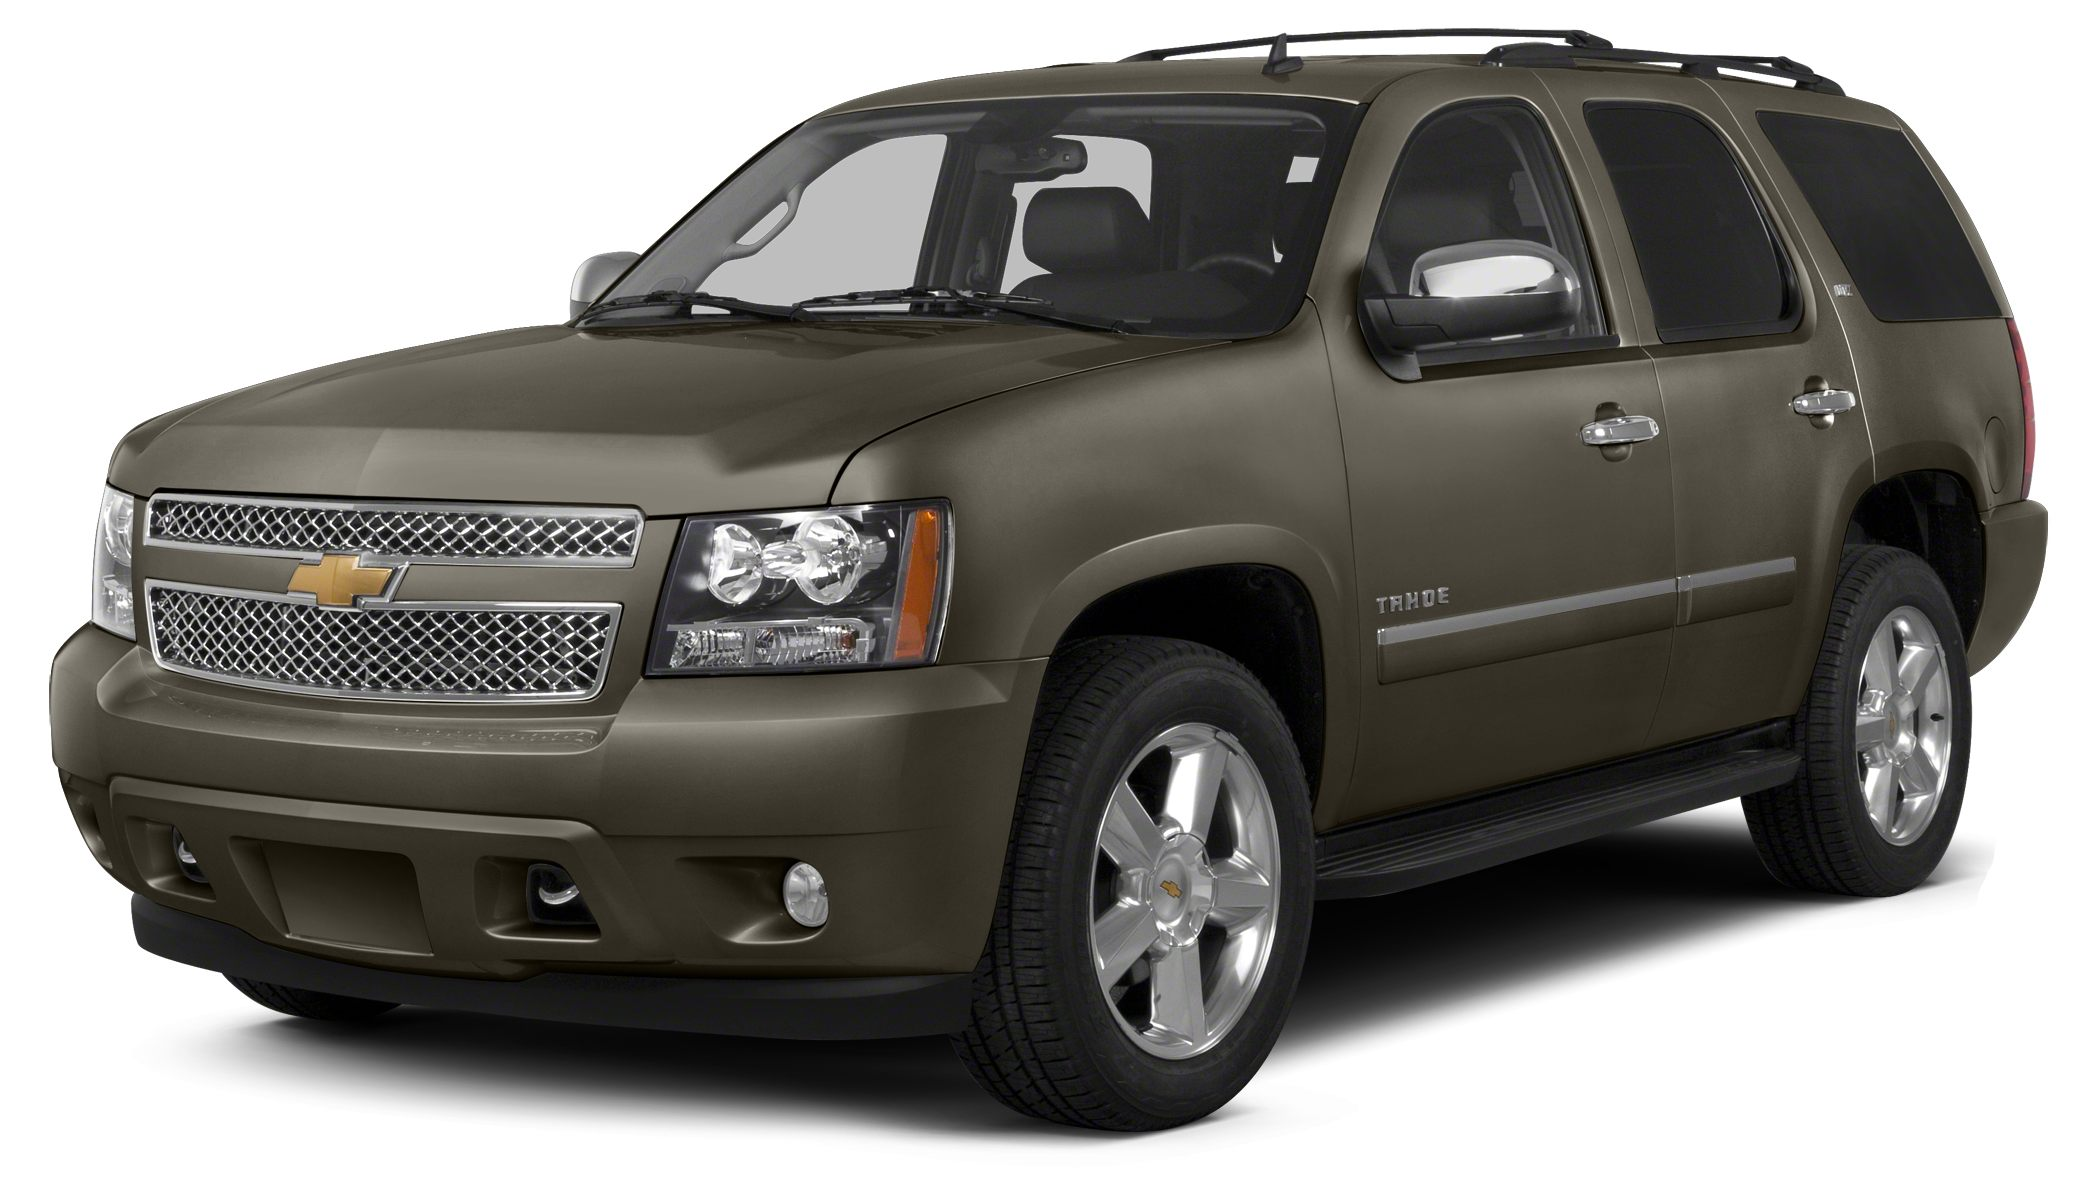 2013 Chevrolet Tahoe LT Excellent Condition GREAT MILES 18202 700 below NADA Retail 3rd Row S